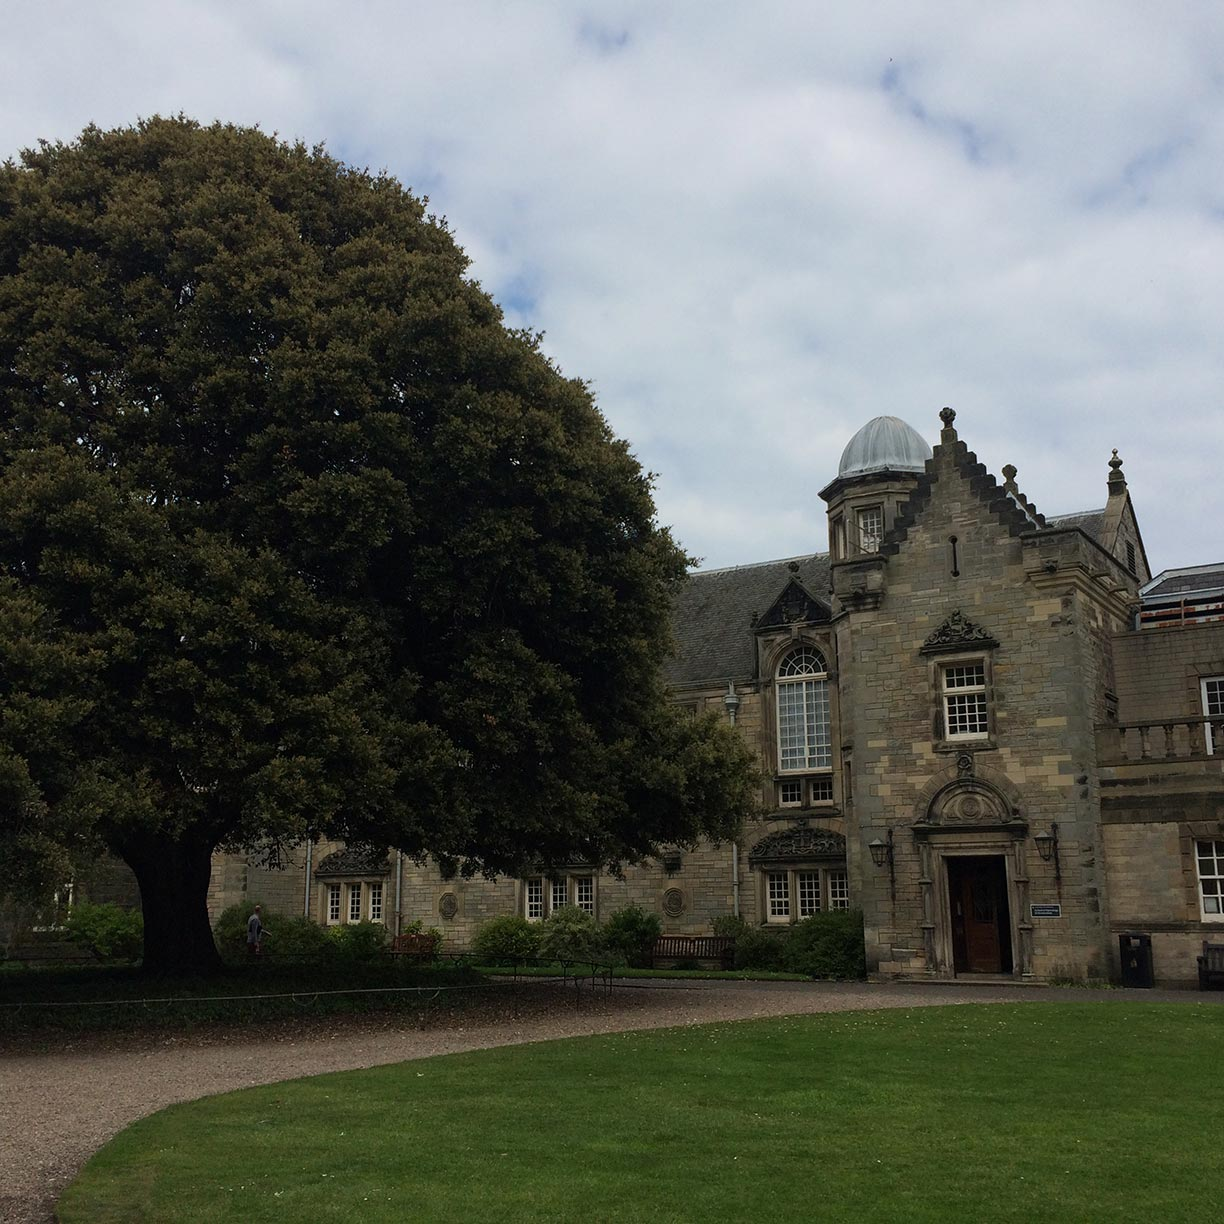 An old building and a tree in St. Andrews, Scotland.